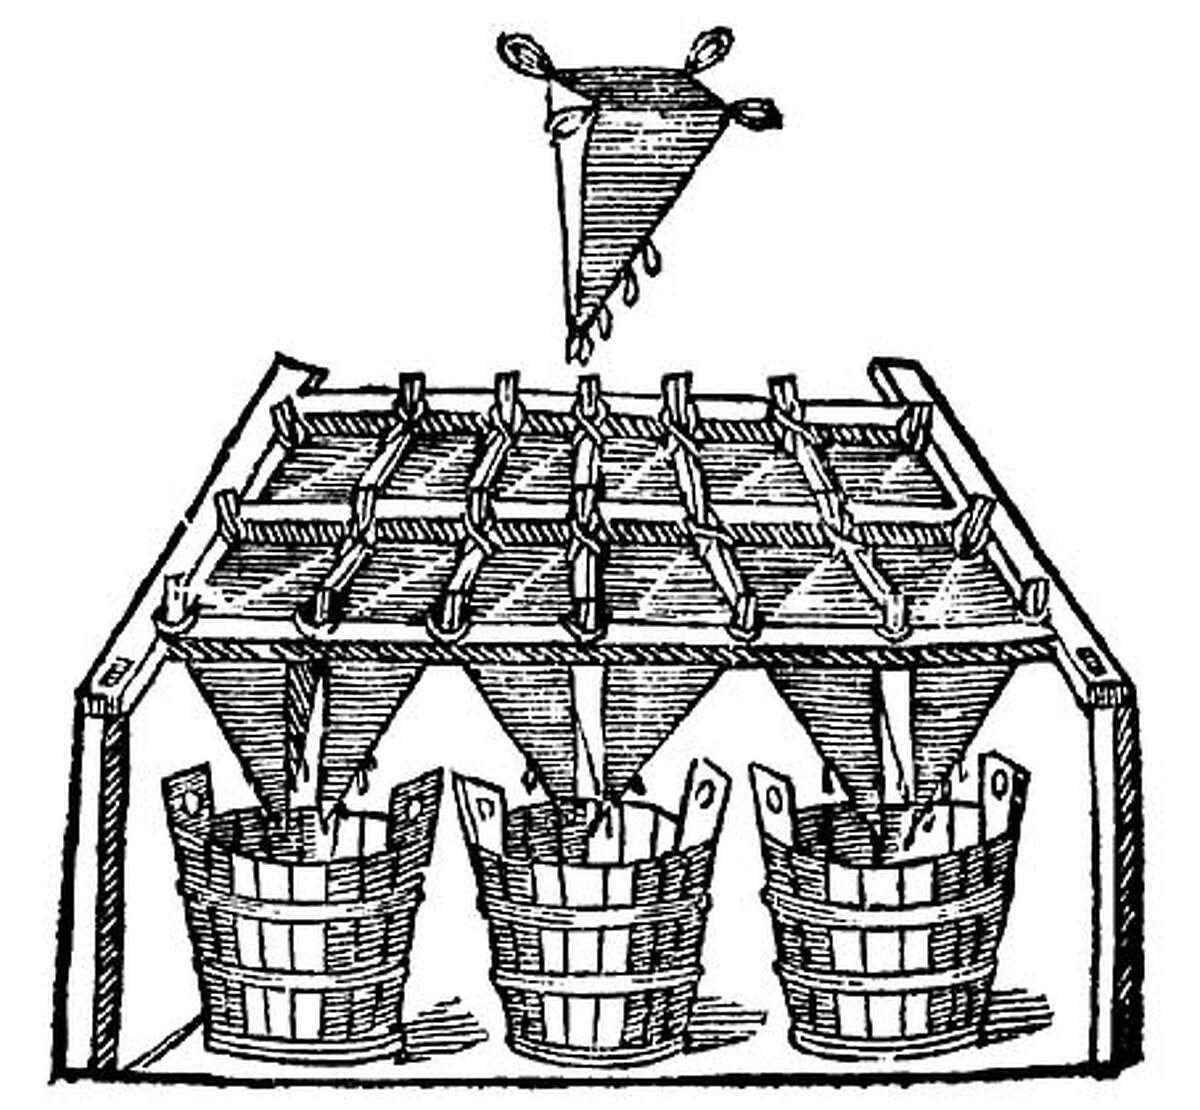 A wine filter shown in a 1572 book on Italian winemaking. Image courtesy of Sean Thackrey